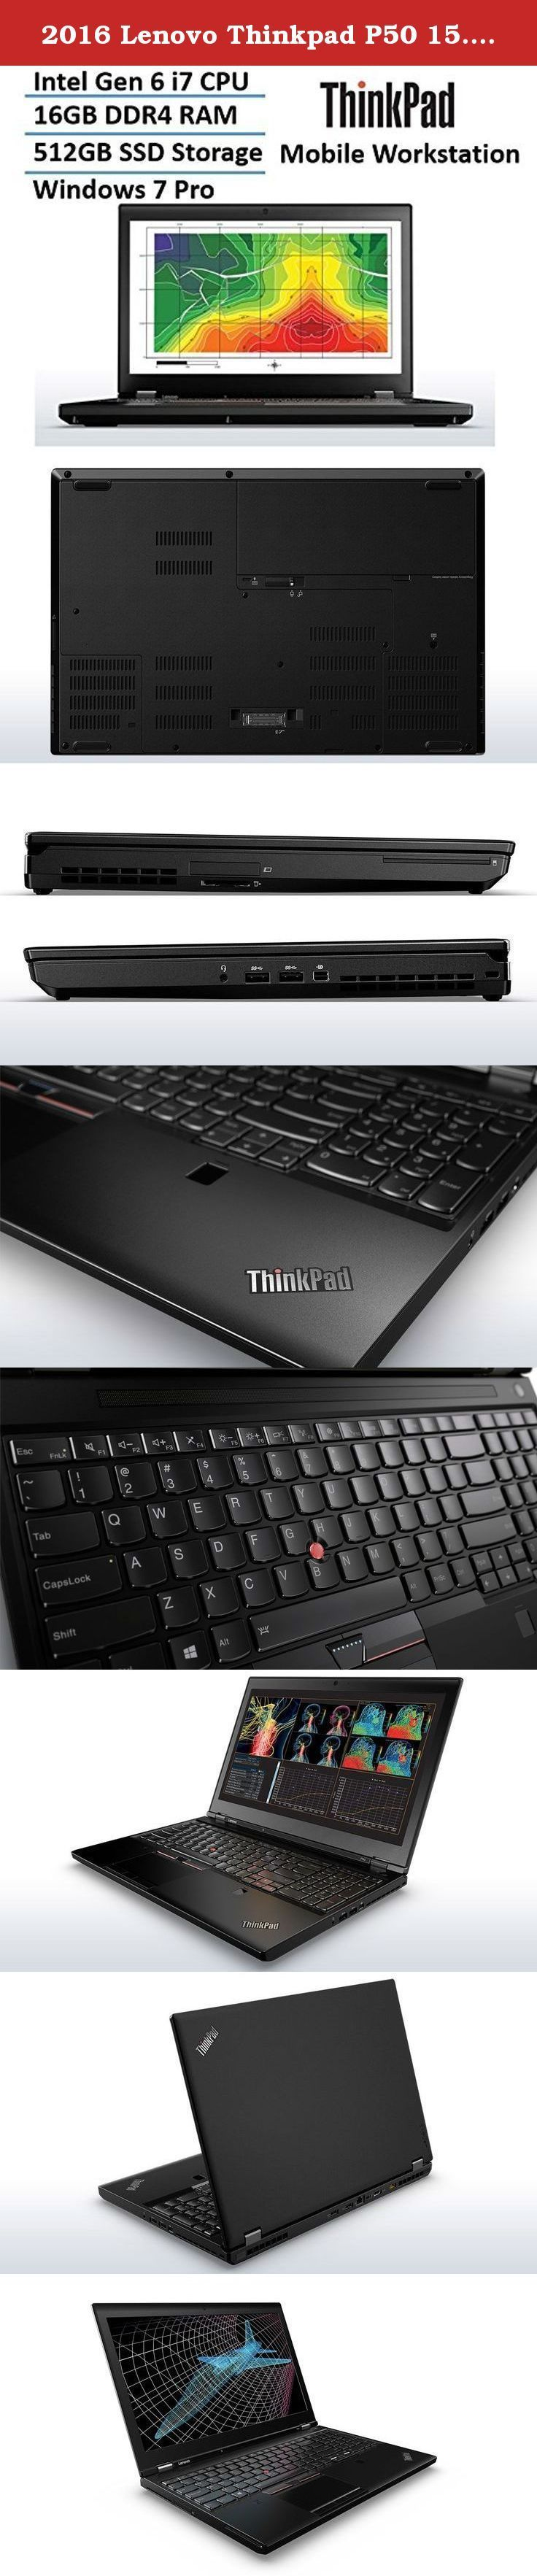 Awesome Lenovo ThinkPad 2017: 2016 Lenovo Thinkpad P50 15.6-inch Workstation Laptop (up to 3.5 GHz Intel Core ...  Traditional Laptops, Laptops, Computers & Tablets, Computers & Accessories, Electronics Check more at http://mytechnoworld.info/2017/?product=lenovo-thinkpad-2017-2016-lenovo-thinkpad-p50-15-6-inch-workstation-laptop-up-to-3-5-ghz-intel-core-traditional-laptops-laptops-computers-tablets-computers-accessories-electronics